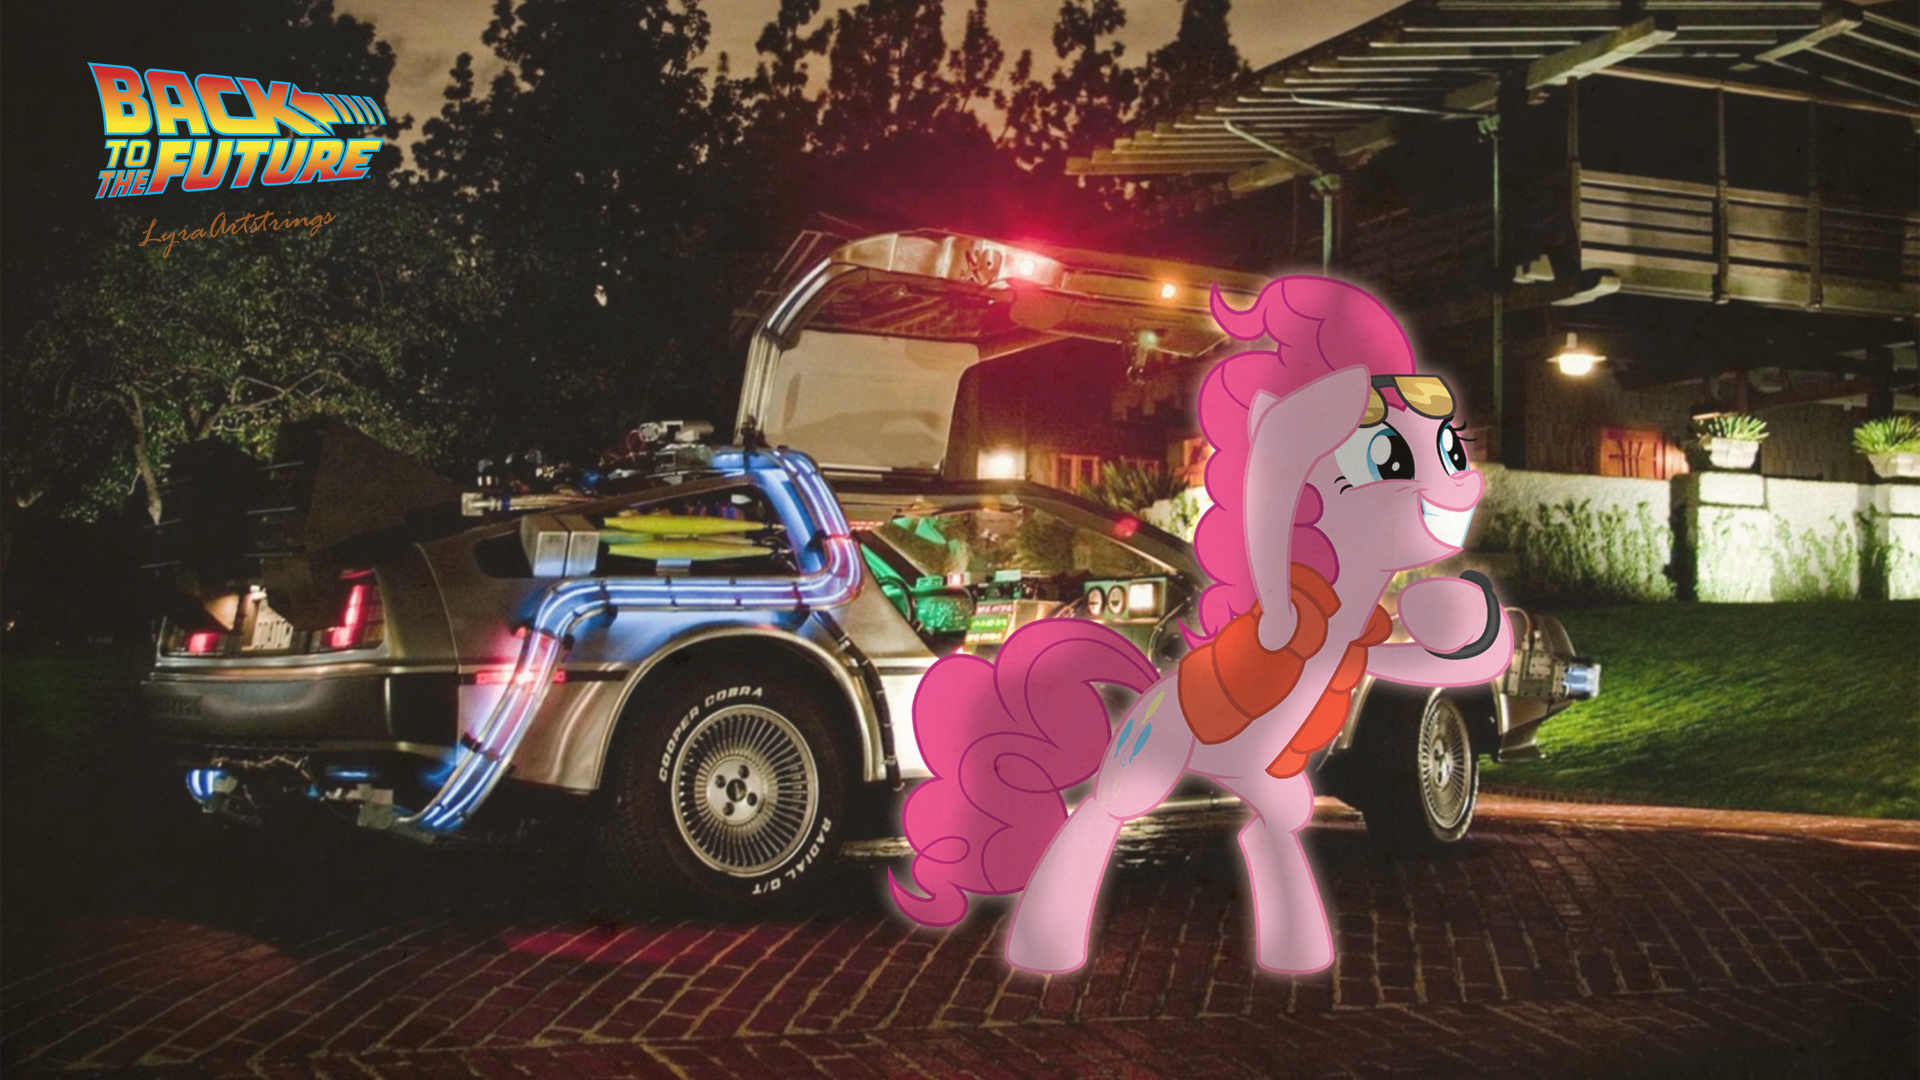 MLP Back To Future Wallpaper (1920 X 1080) By